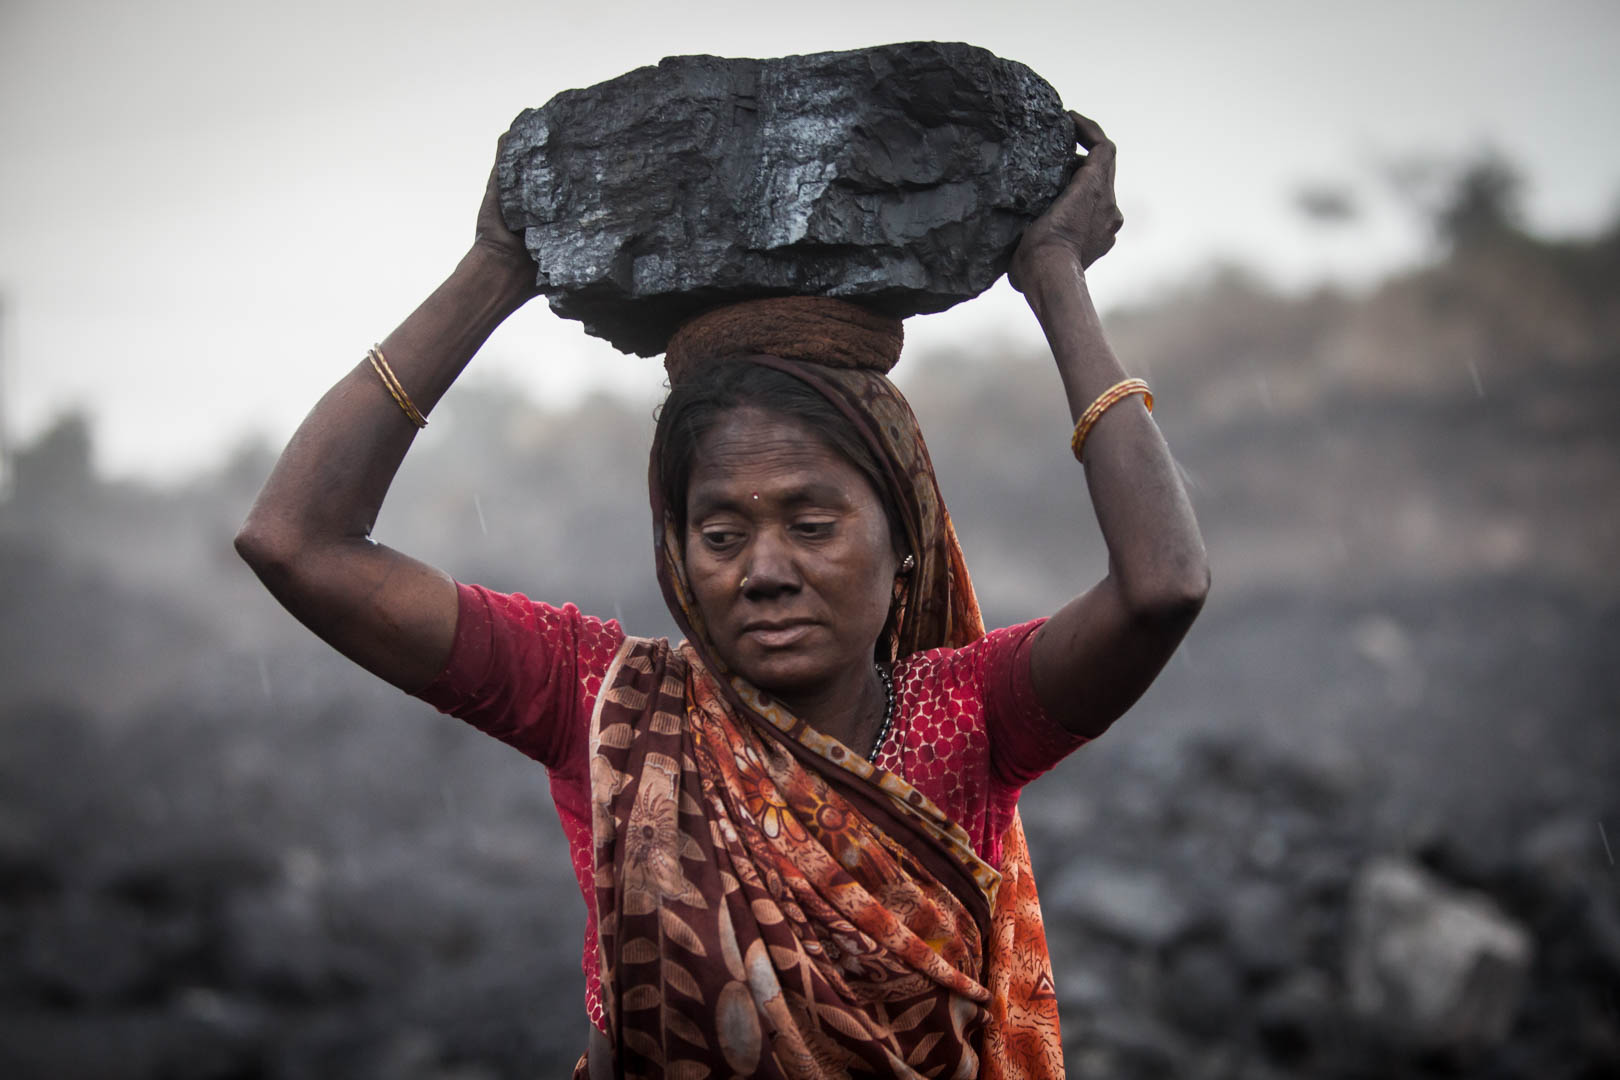 A woman is carrying a heavy chunk of coal on her head that she has collected from a government mine.